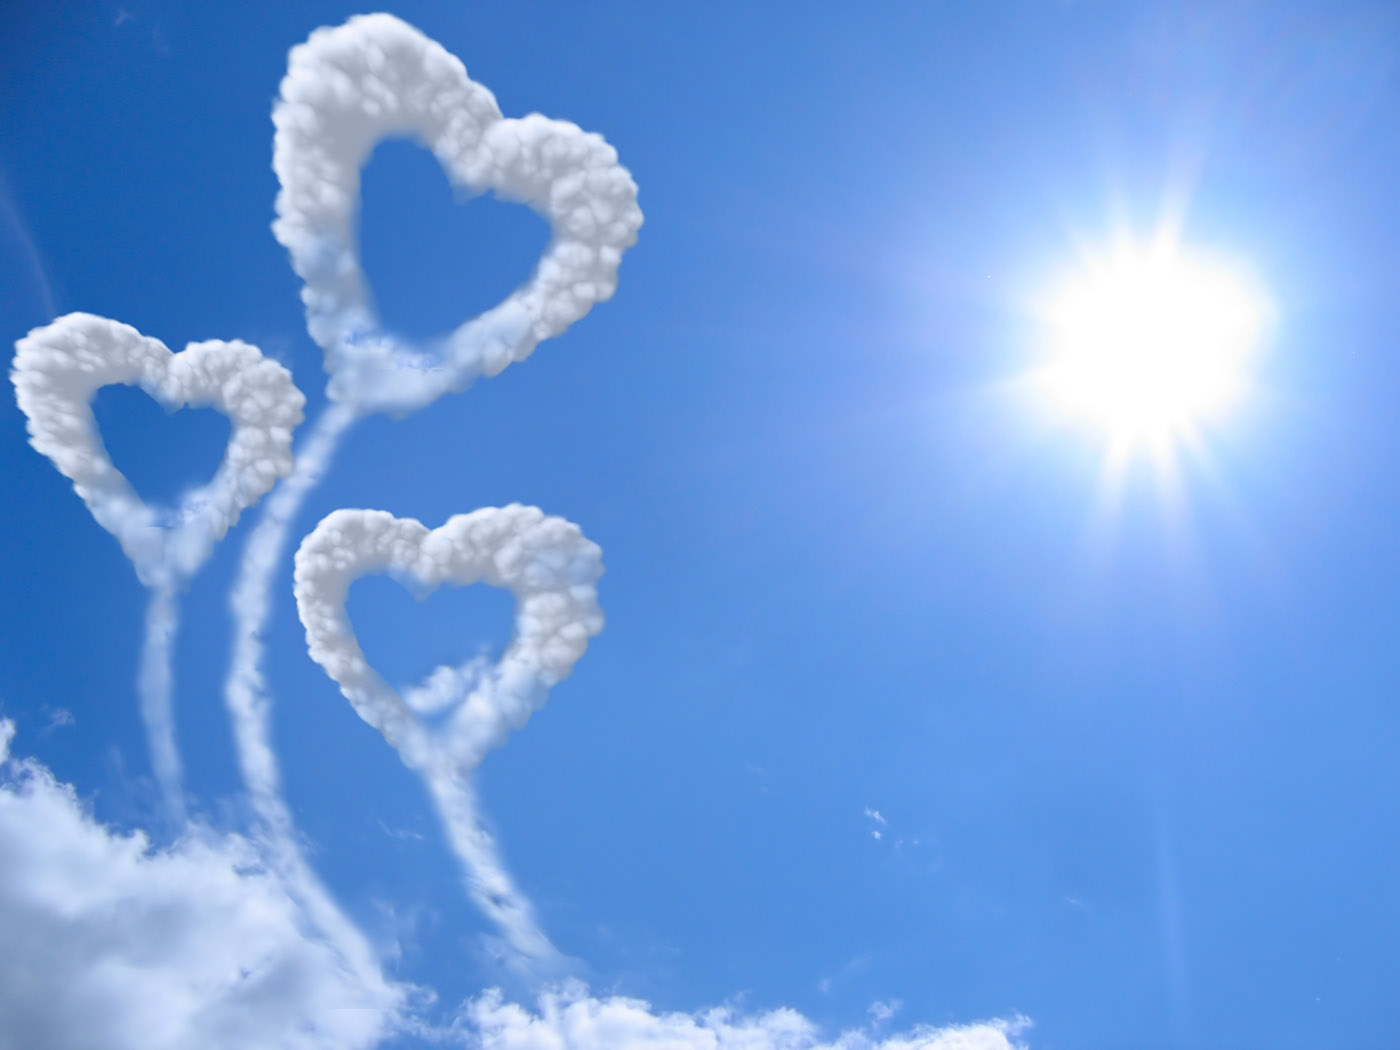 Valentine's Day - Heart shaped cloud wallpapers - ART FOR